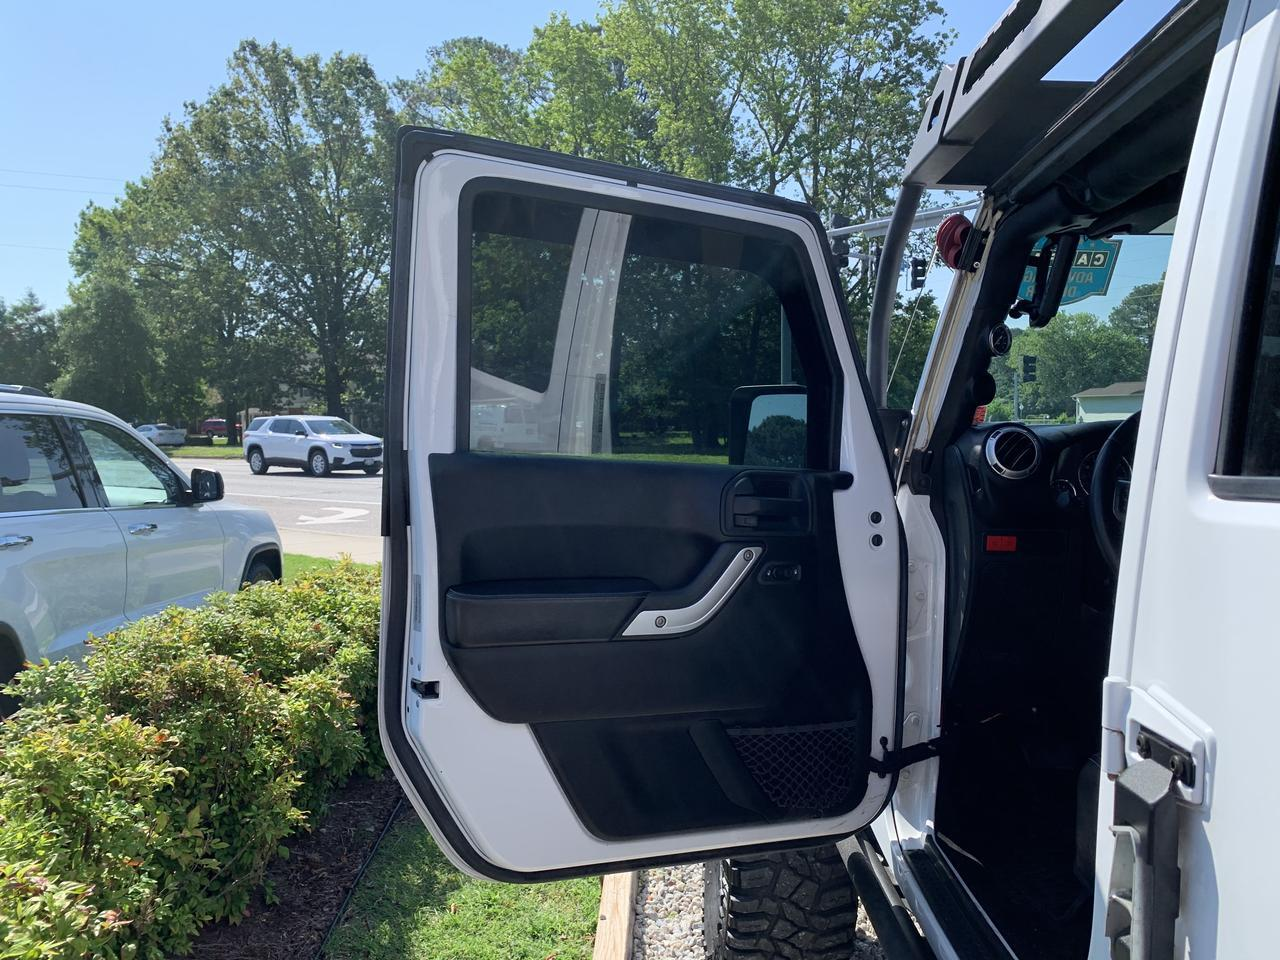 2015 JEEP WRANGLER UNLIMITED RUBICON HARD ROCK 4X4, WARRANTY, LIFTED, LEATHER, HEATED SEATS, NAV, 1 OWNER,CLEAN CARFAX! Norfolk VA